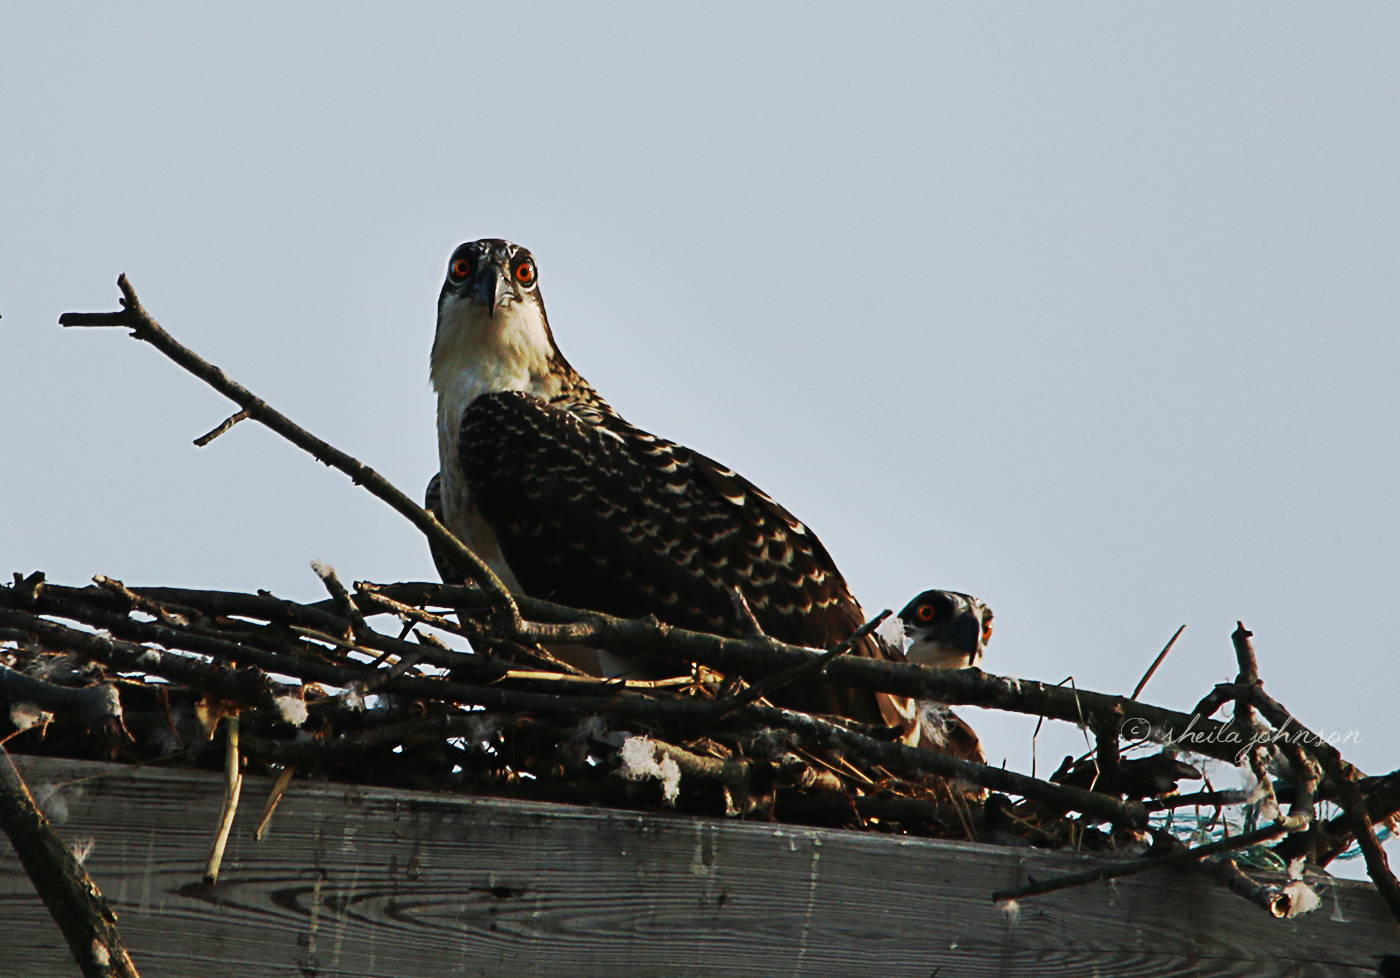 That Look, Though! These Osprey Siblings Don't Like It When Intruders Get Too Close To The Nest, Especially When Ma And Pa Are Away Hunting For Dinner.